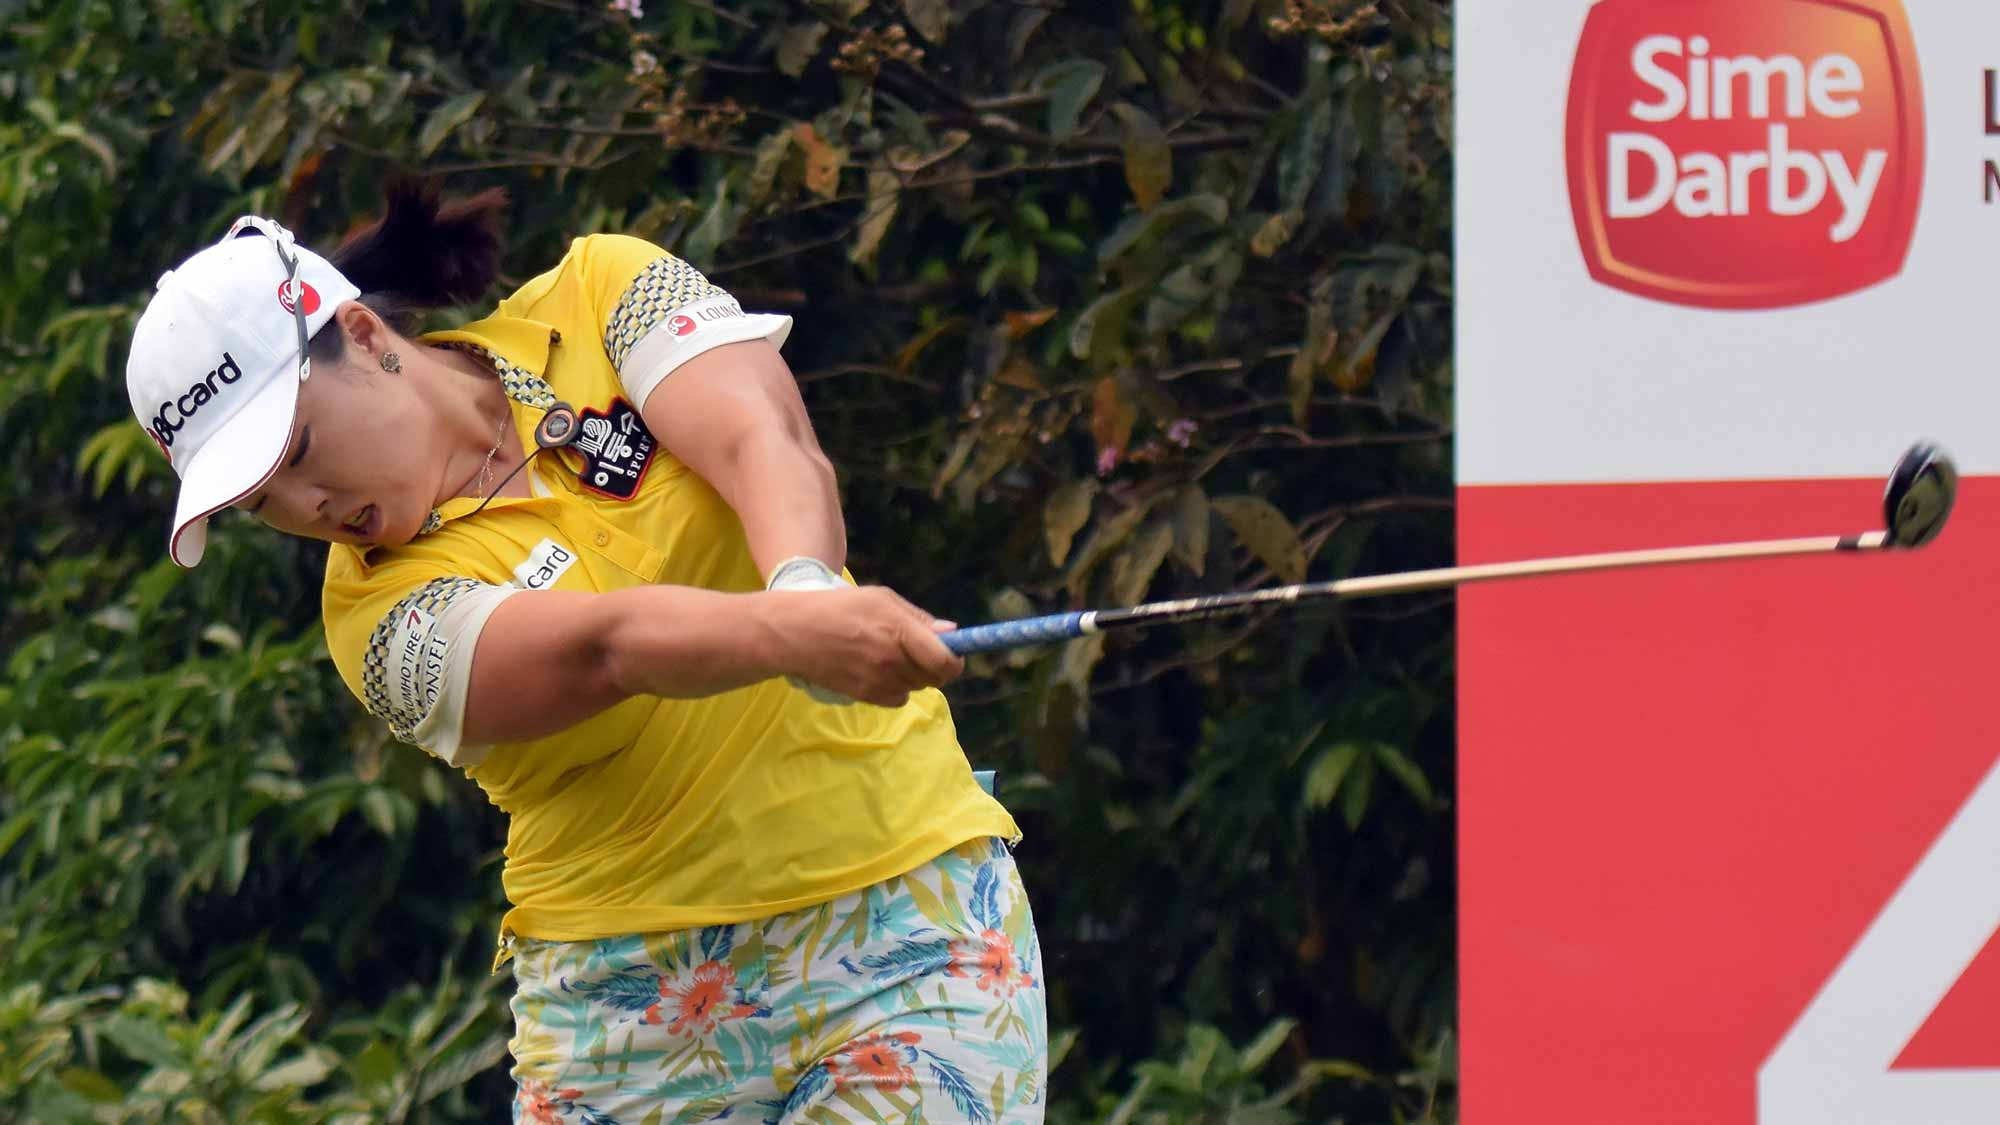 Na Ha Jang of South Korea plays on the 4th hole during the final round of the Sime Darby LPGA Tour at Kuala Lumpur Golf & Country Club